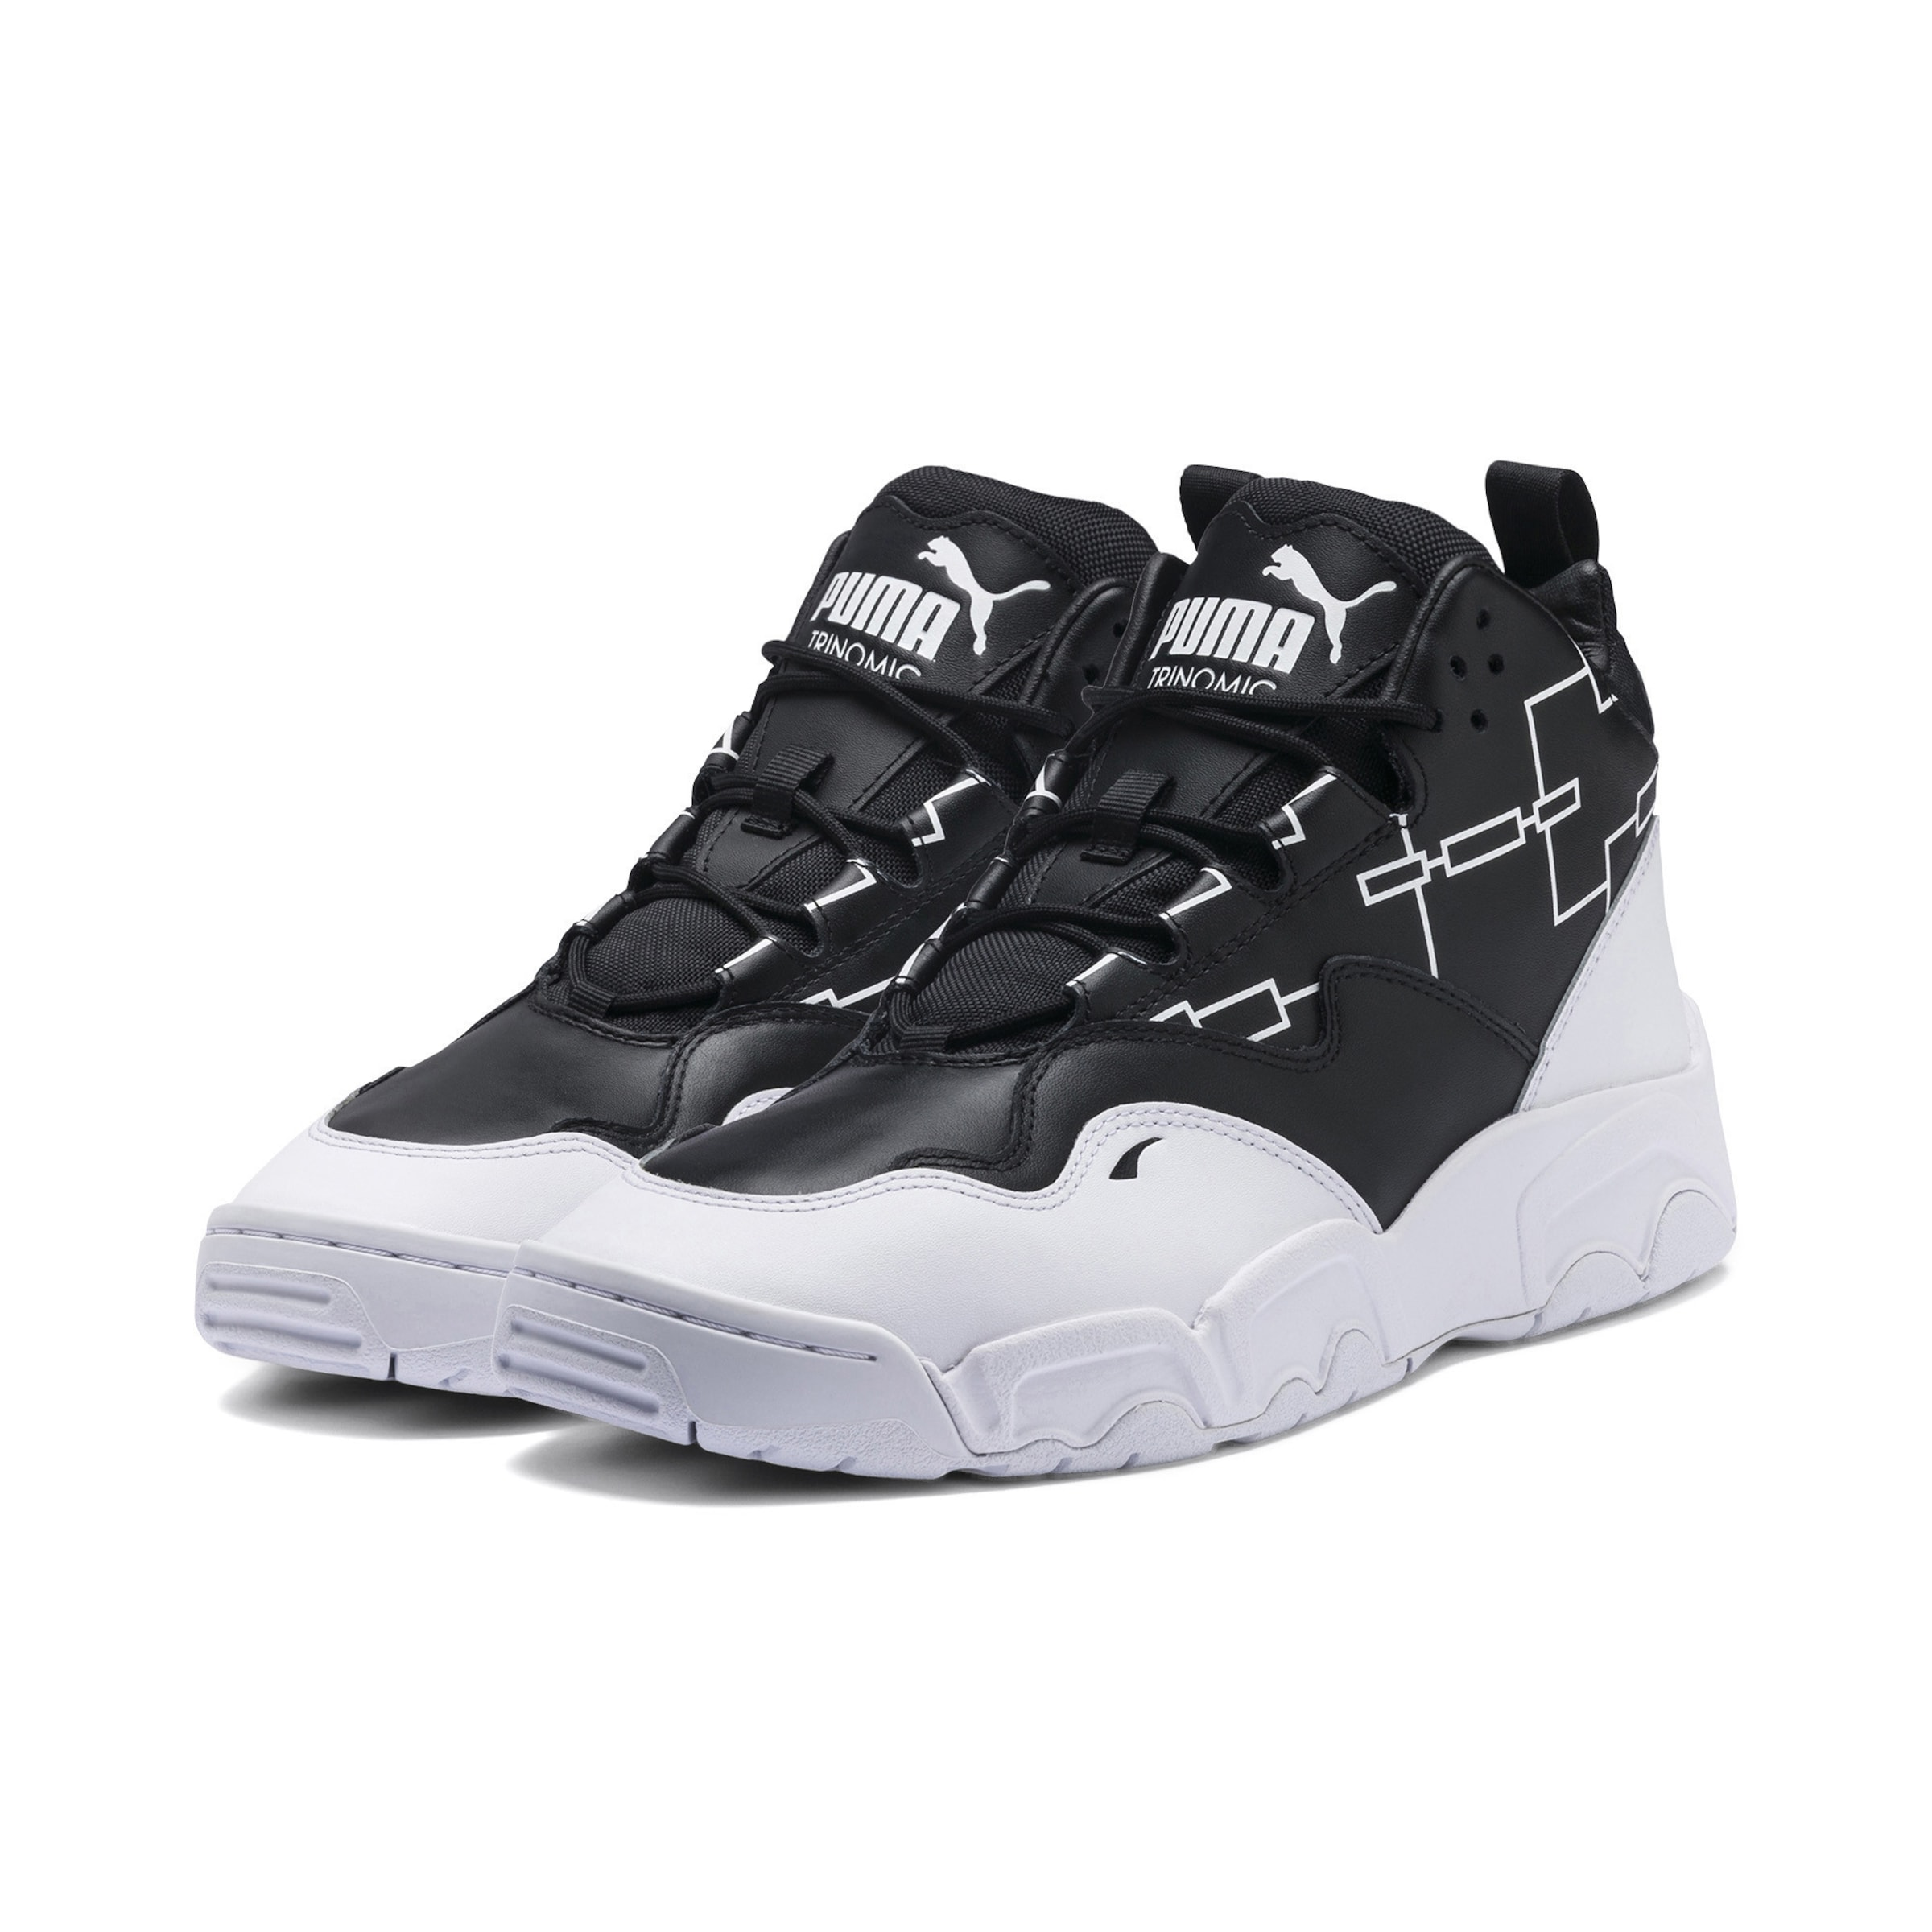 'source Mid Bracket' In Sneaker SchwarzWeiß Puma QrxsdhCt